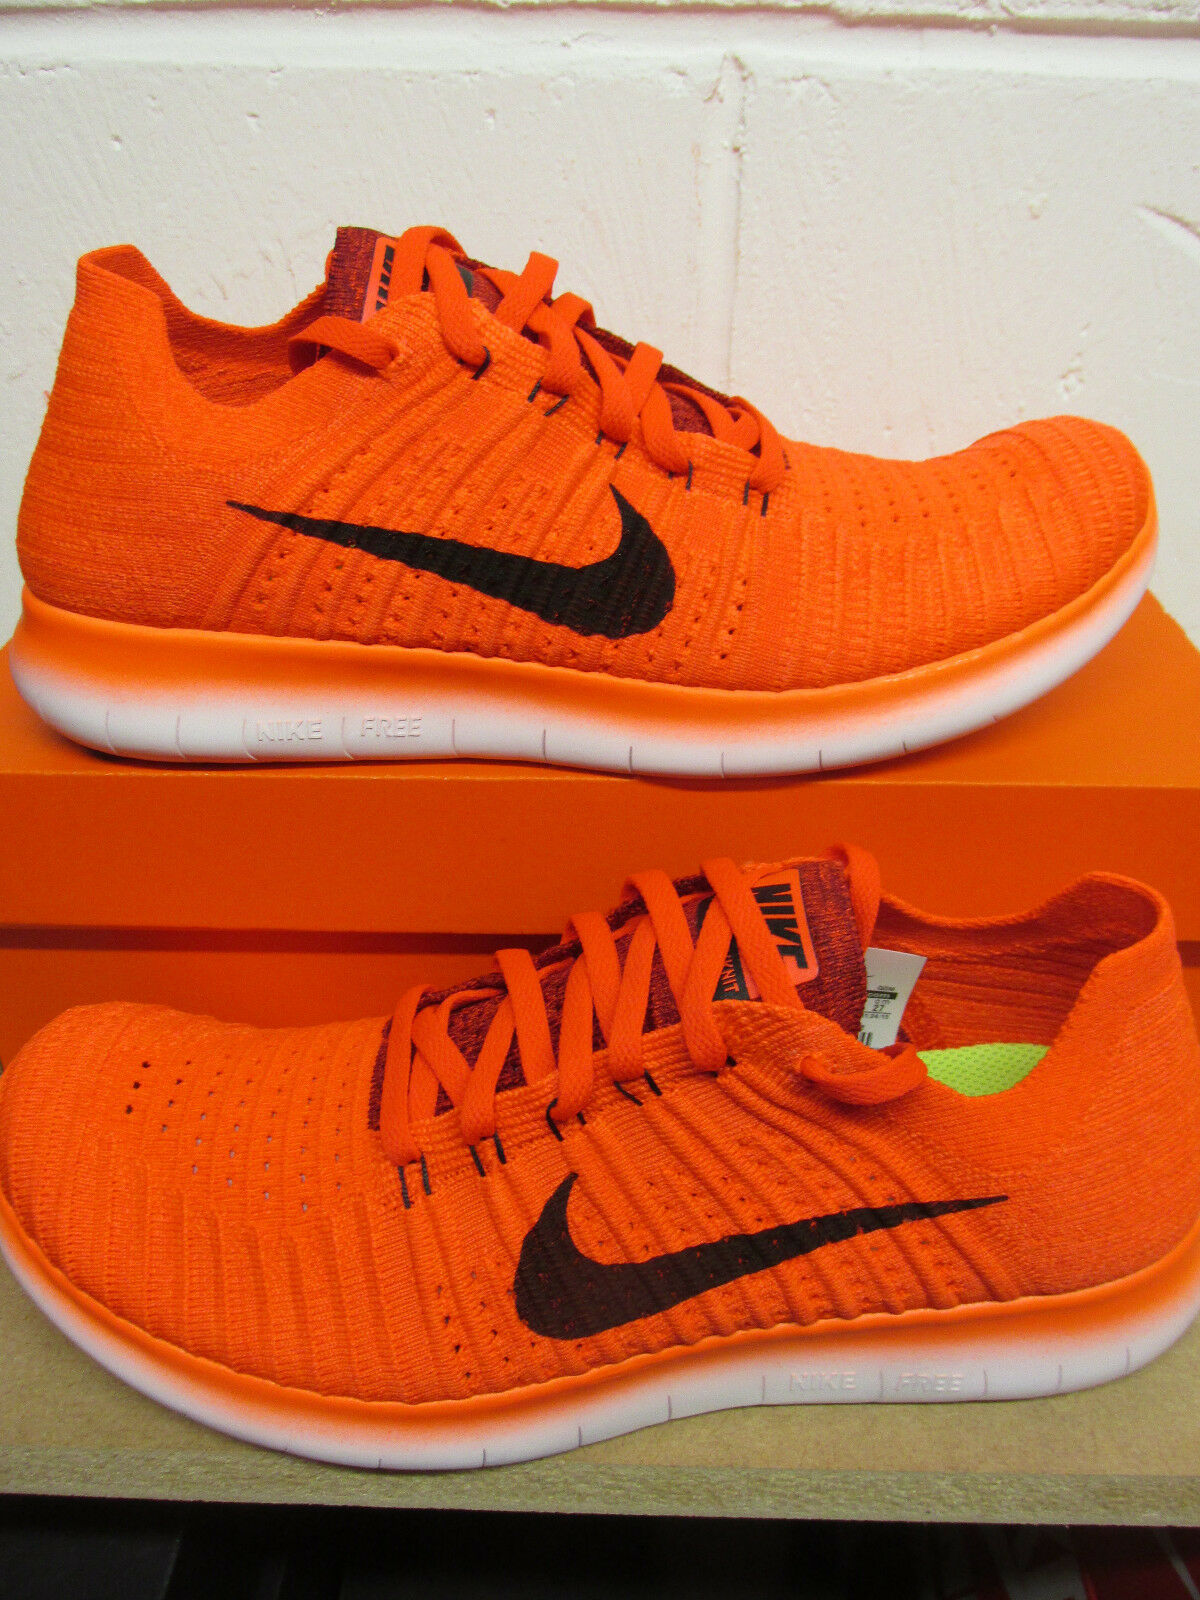 nike free RN flyknit mens running trainers 831069 600 sneakers shoes